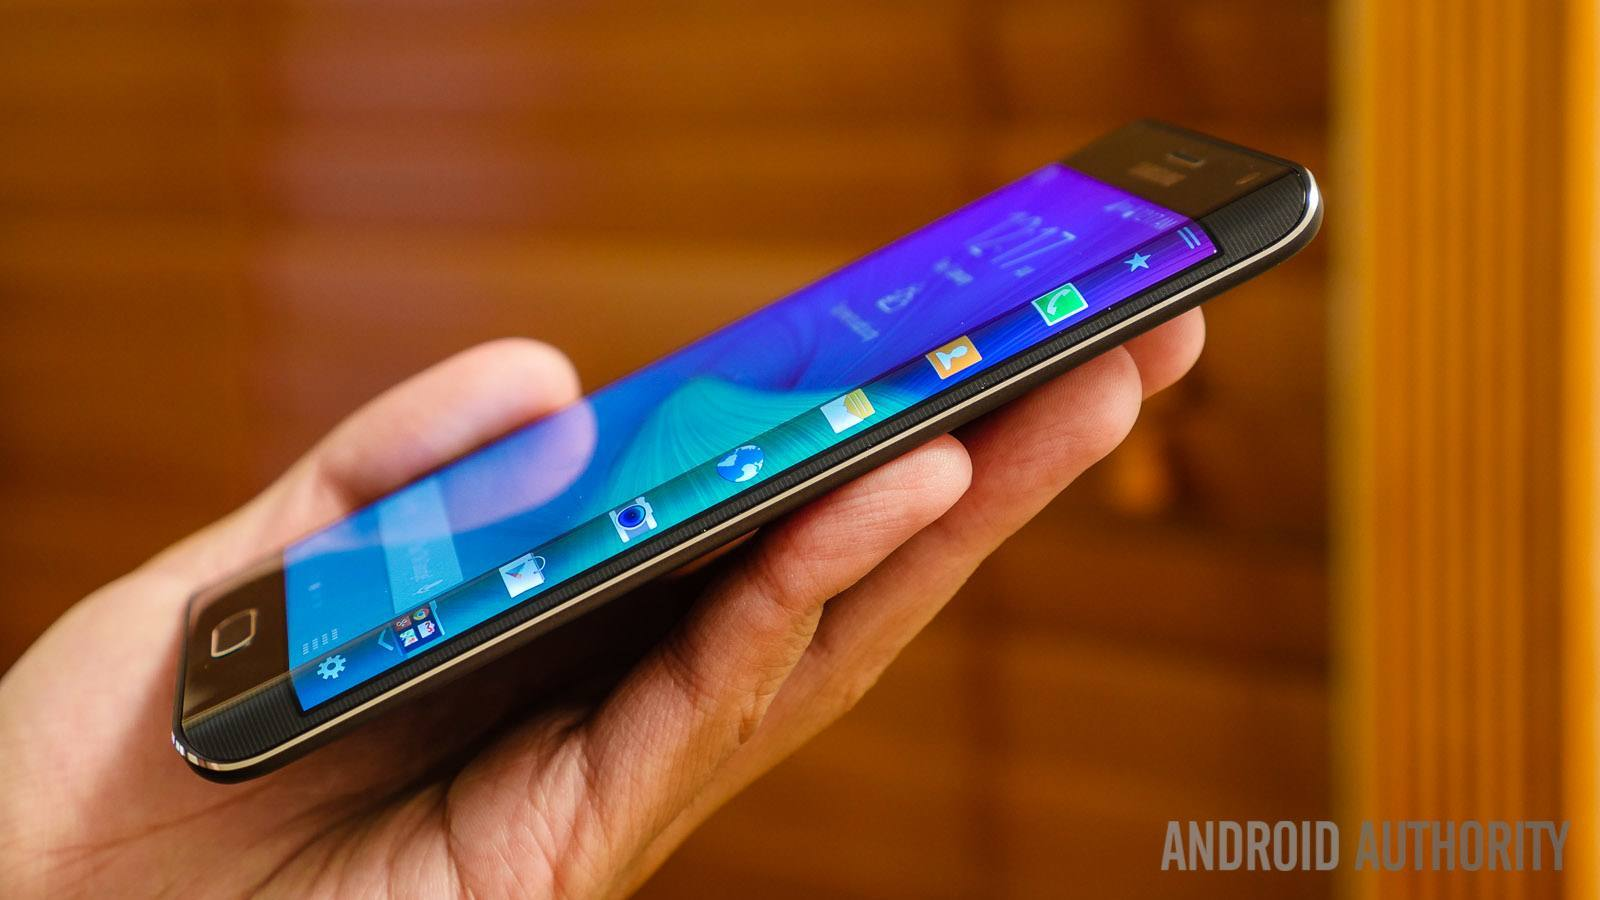 samsung galaxy note edge unboxing (16 of 19)